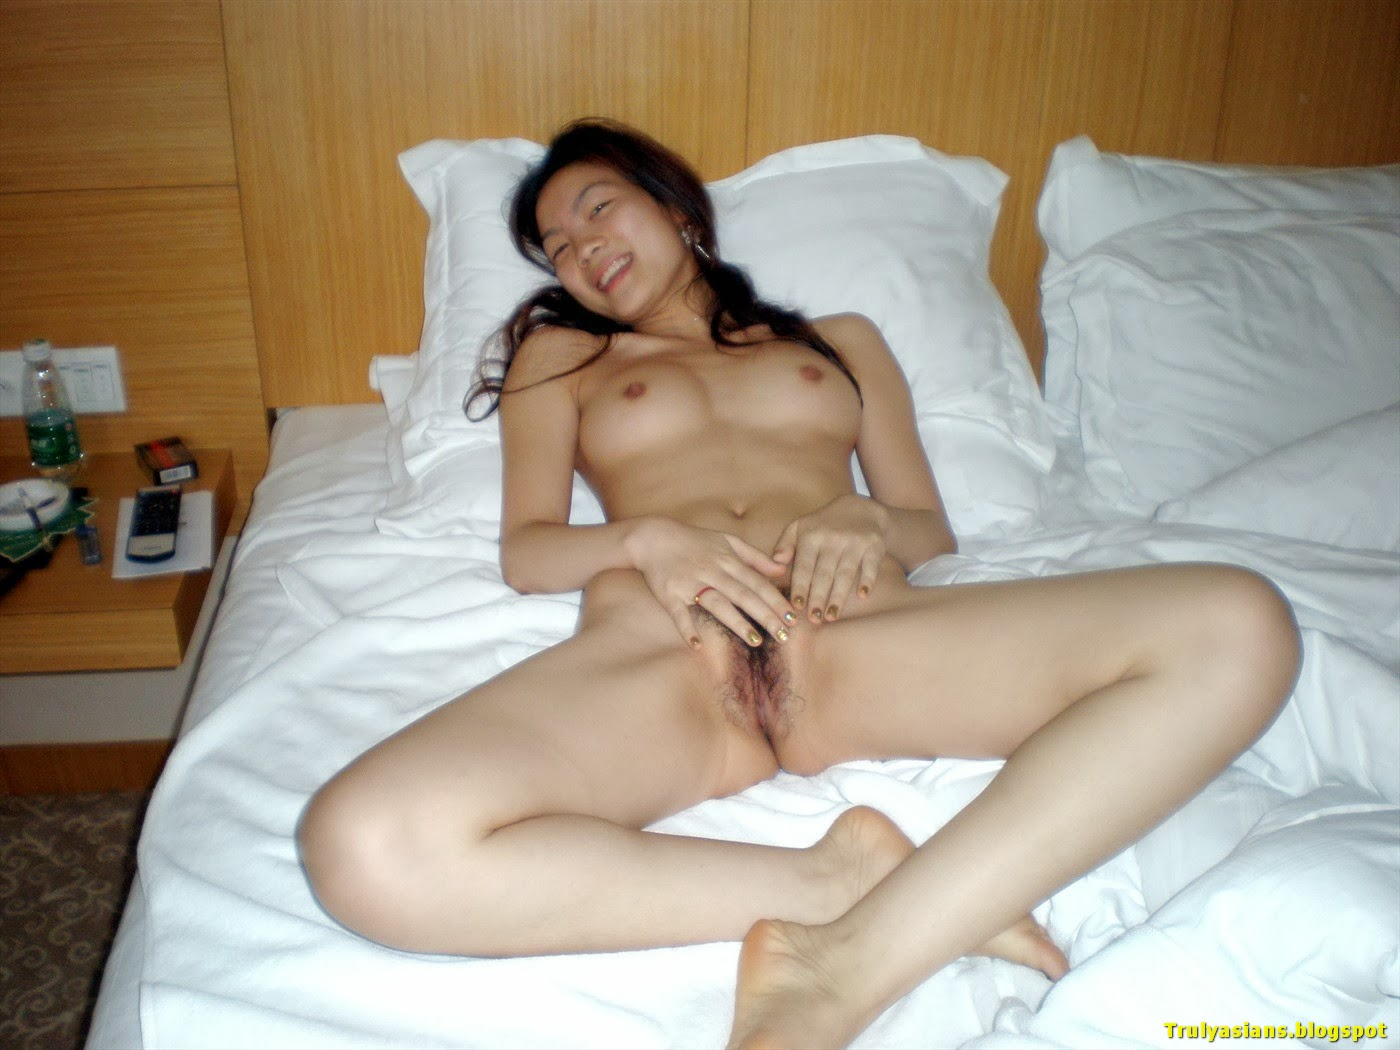 Truly Asians: Amateur Chinese Girlfriend Posing Nude and ...